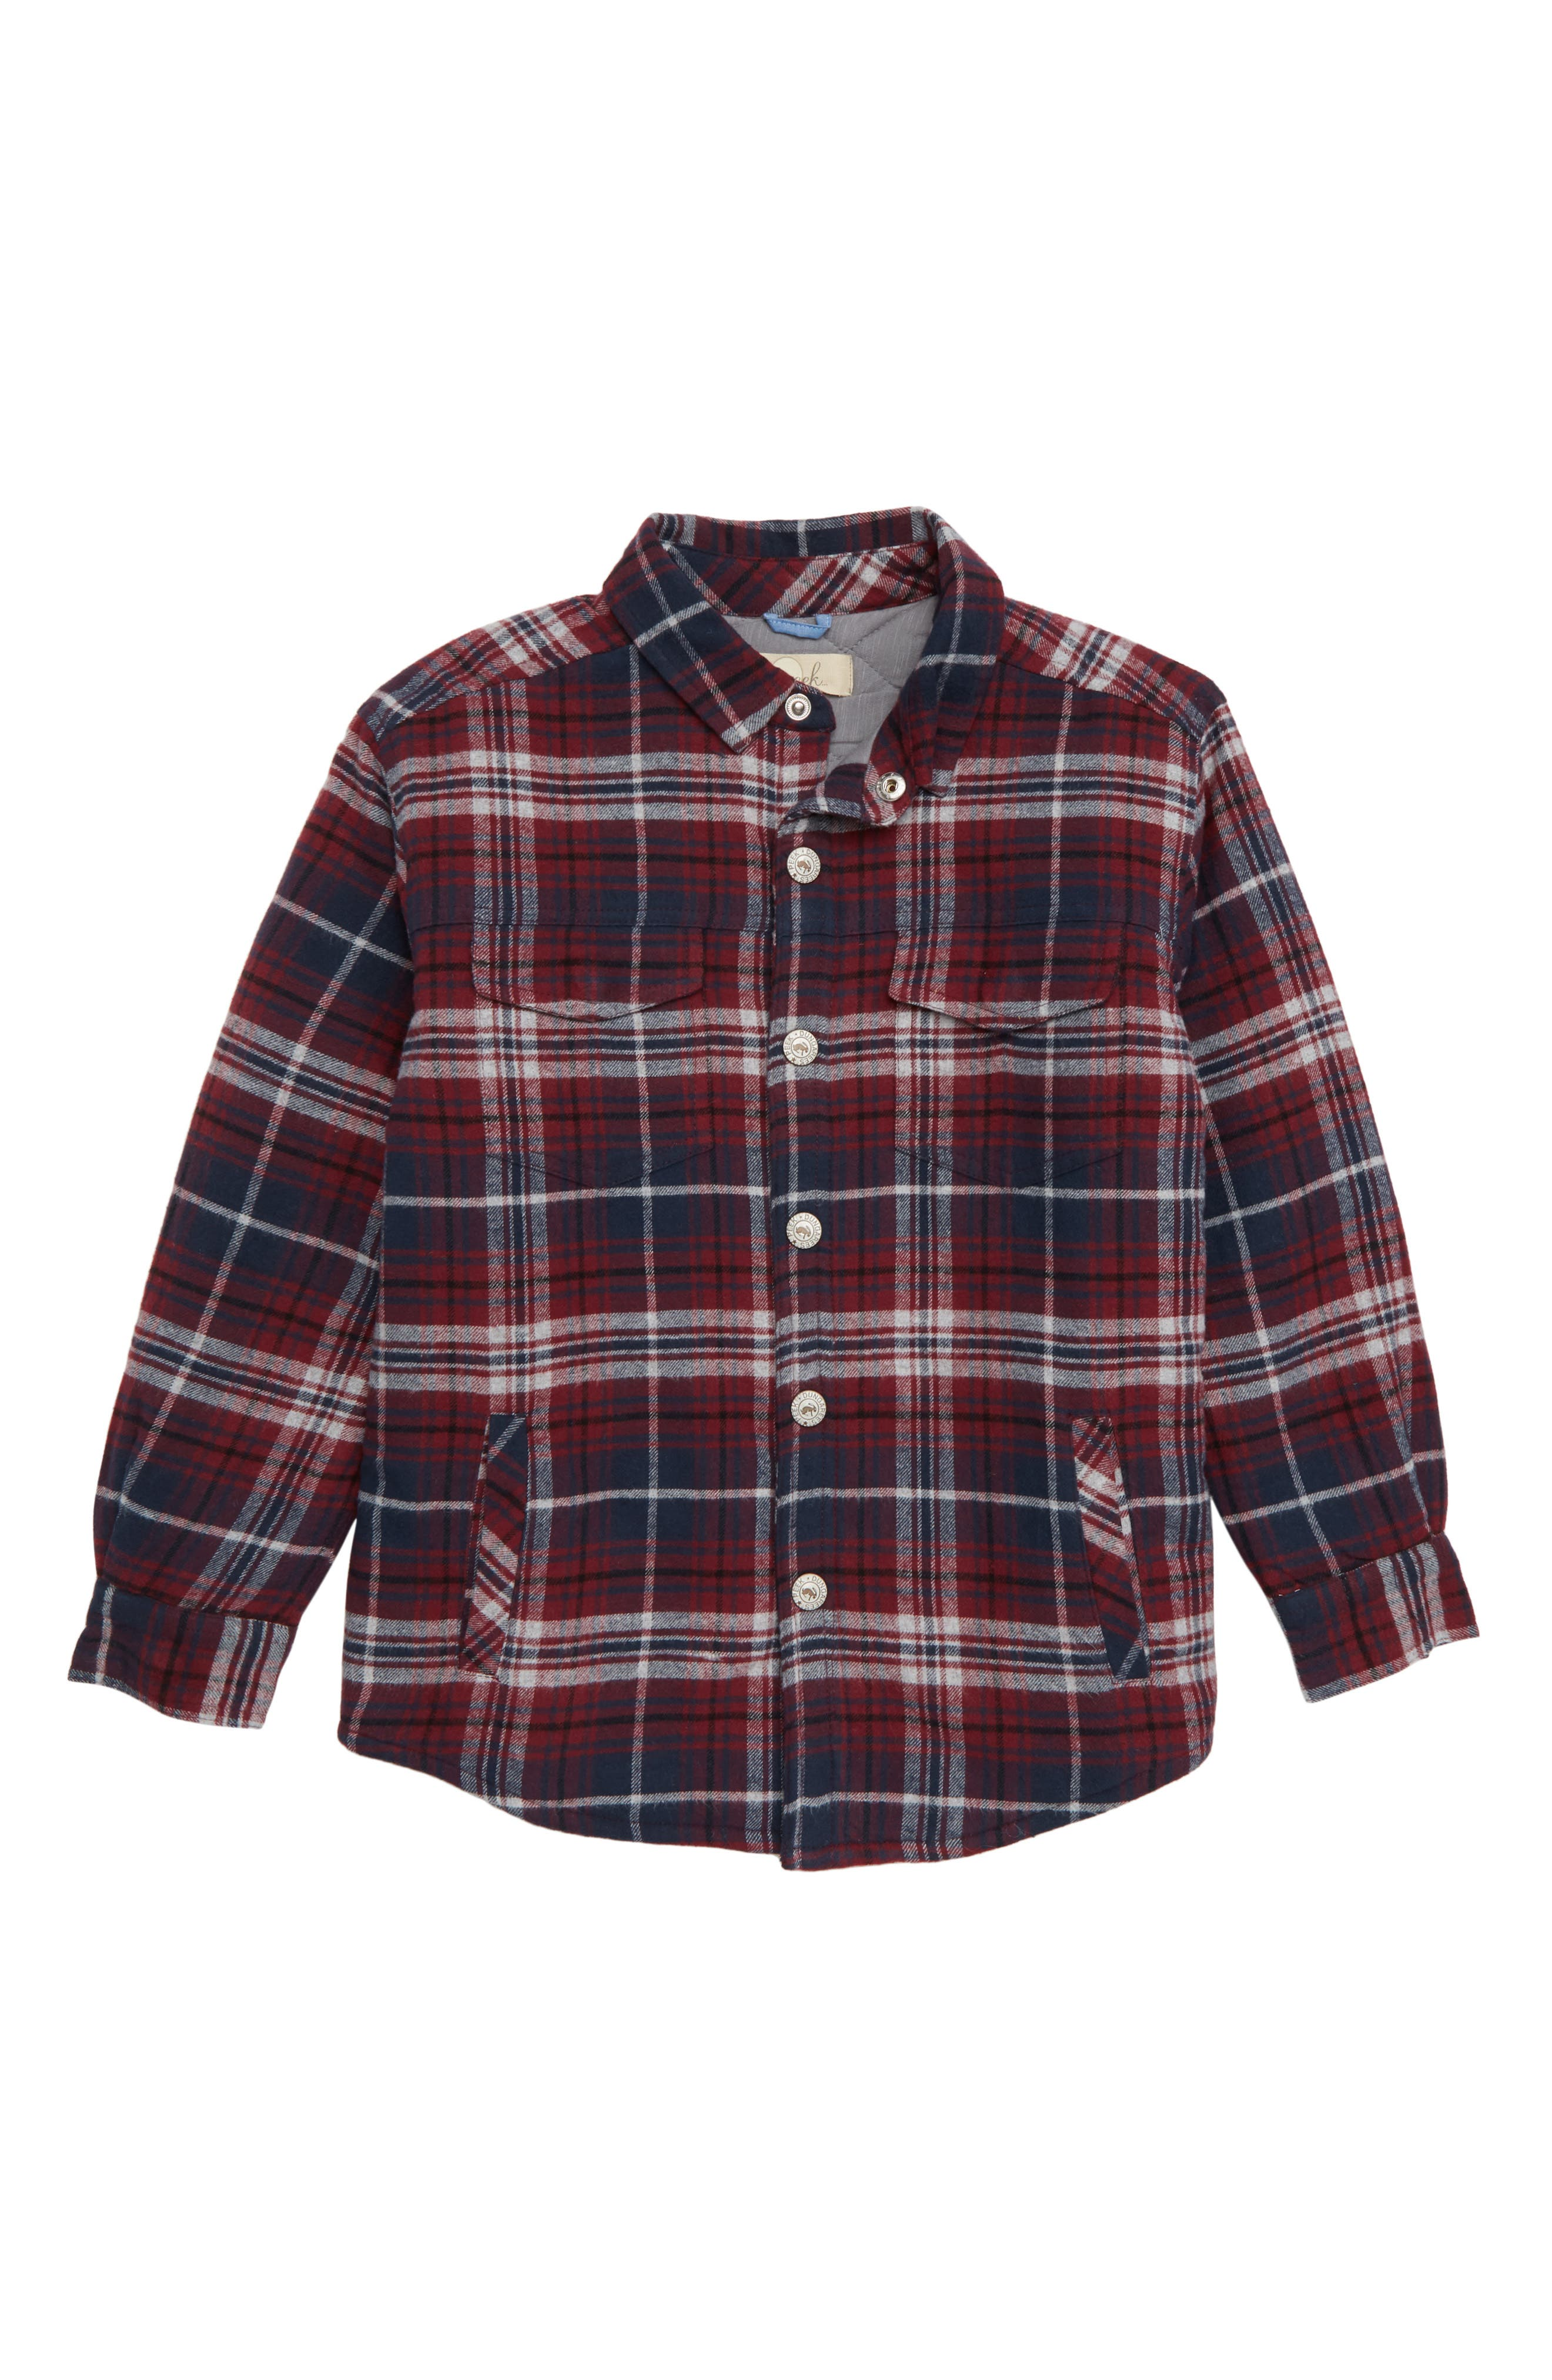 Aiden Quilted Flannel Shirt,                         Main,                         color, BURGUNDY